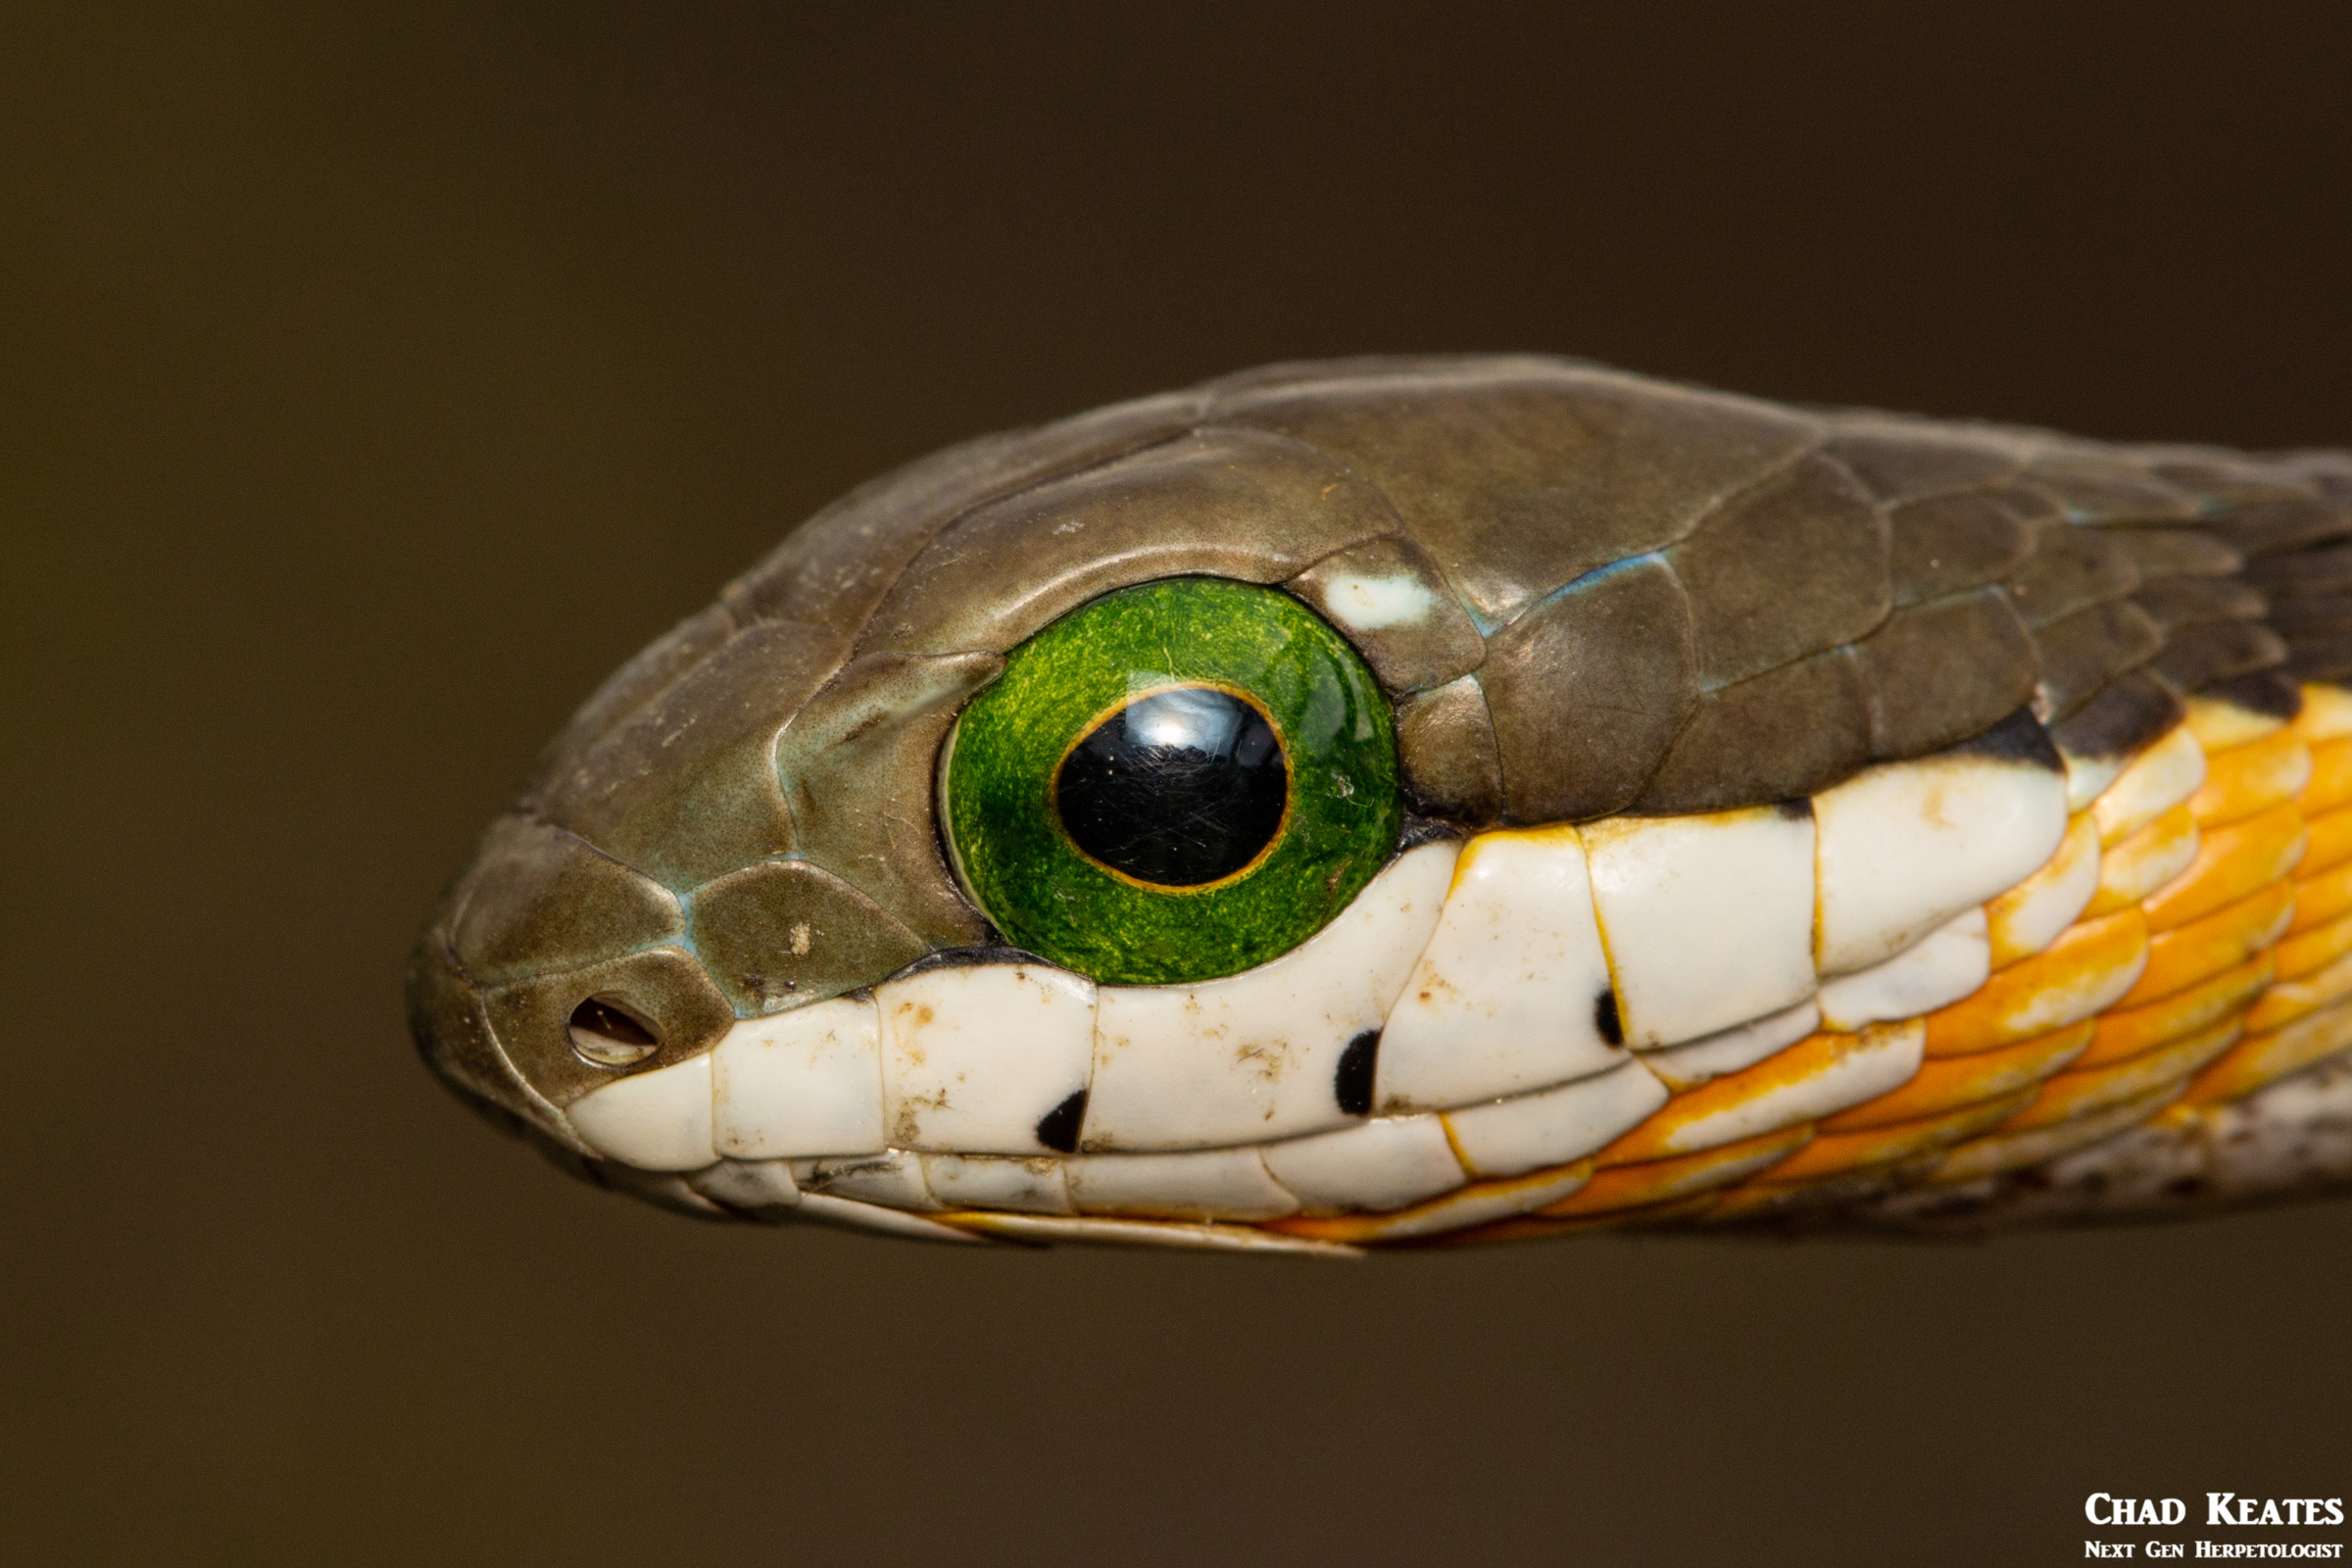 Boomslang (Dispholidus typus typus)